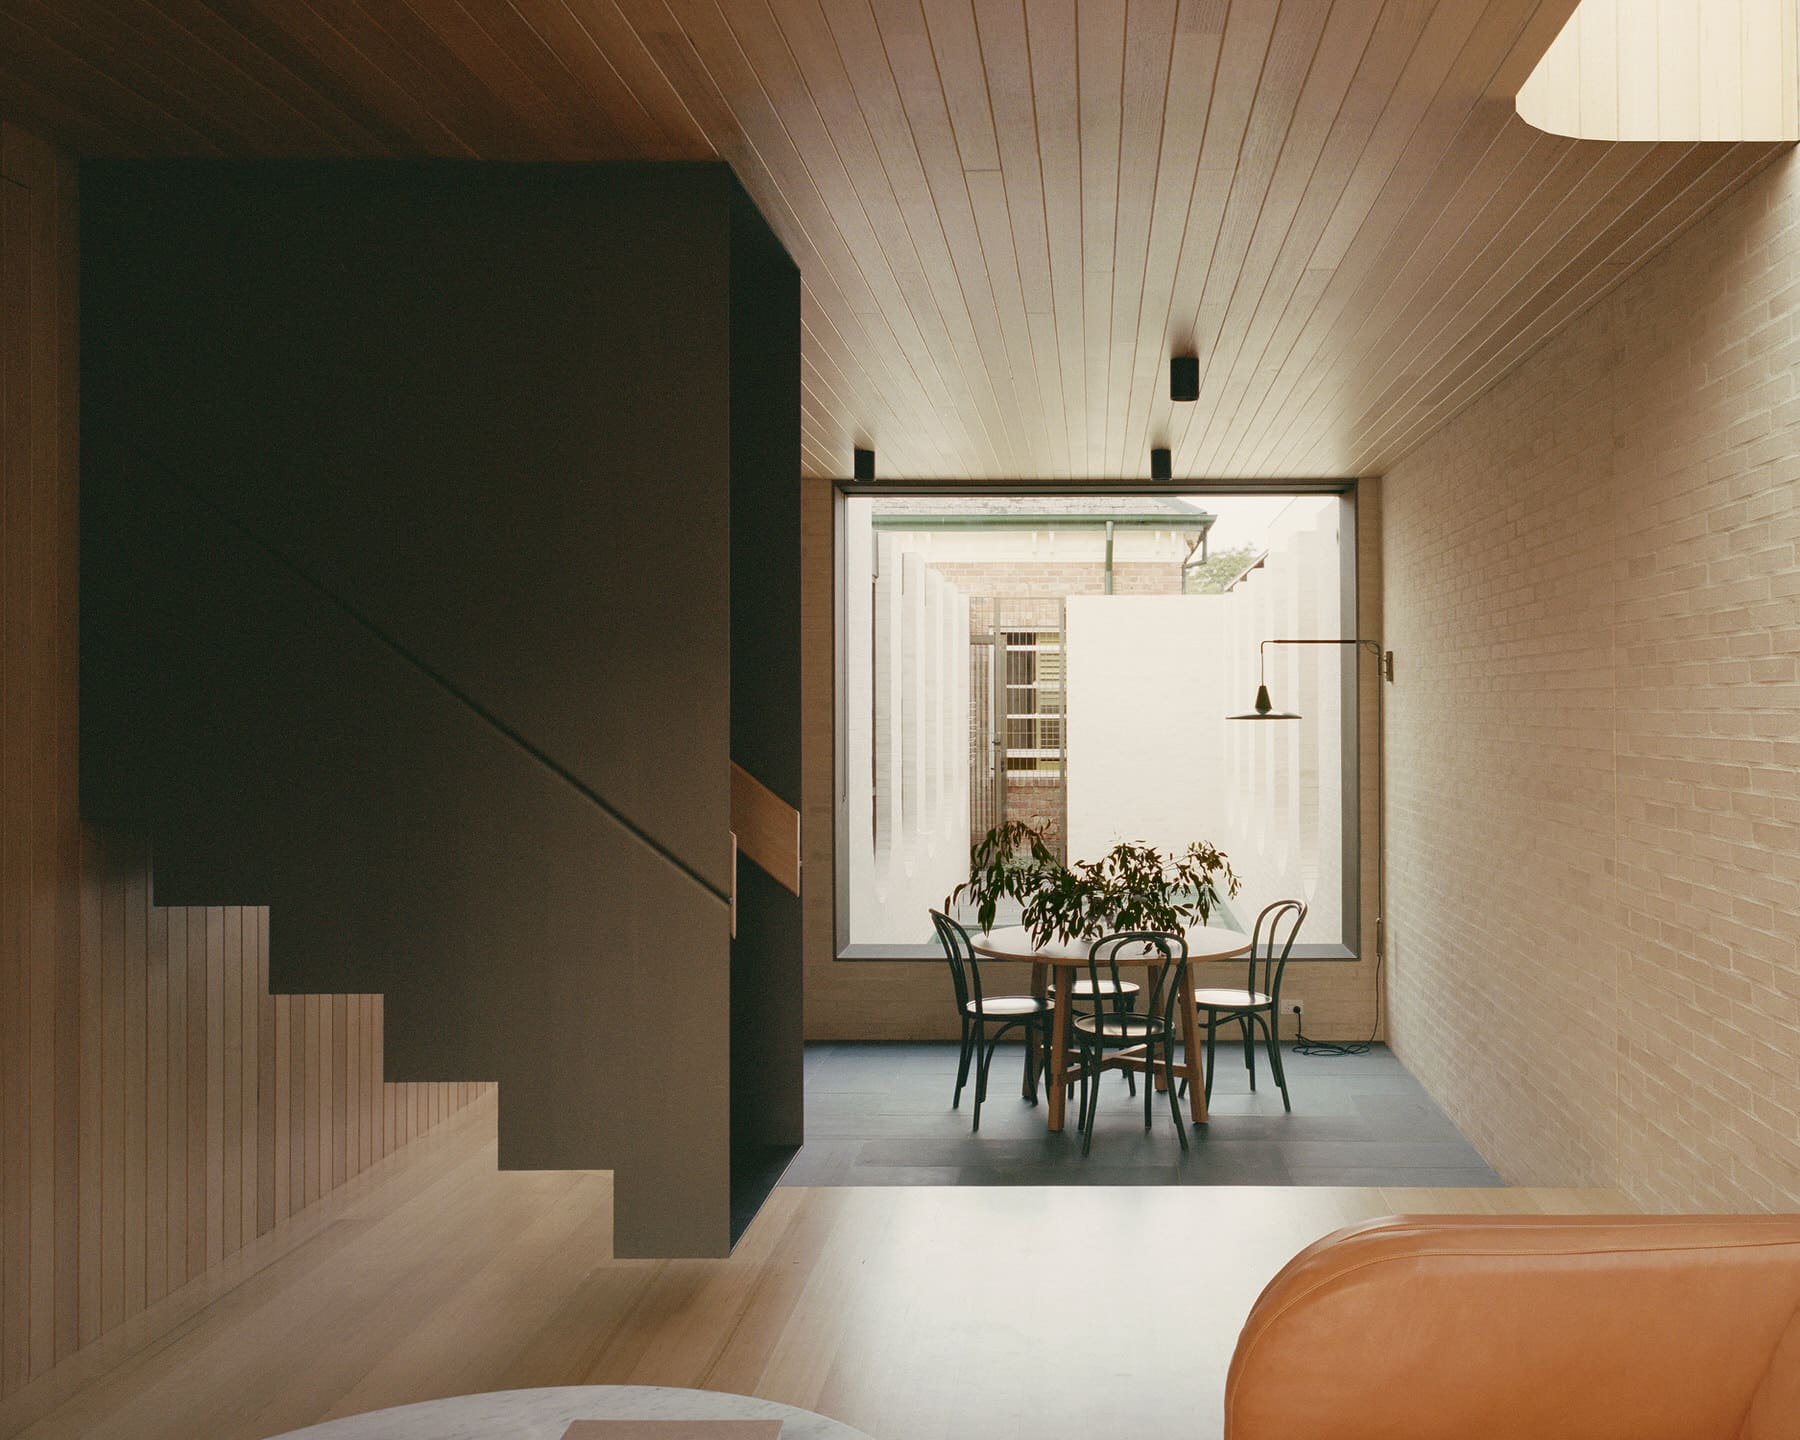 Ruckers_Hill_House_Studio_Bright_foto_Rory_Gardiner_designalive-2